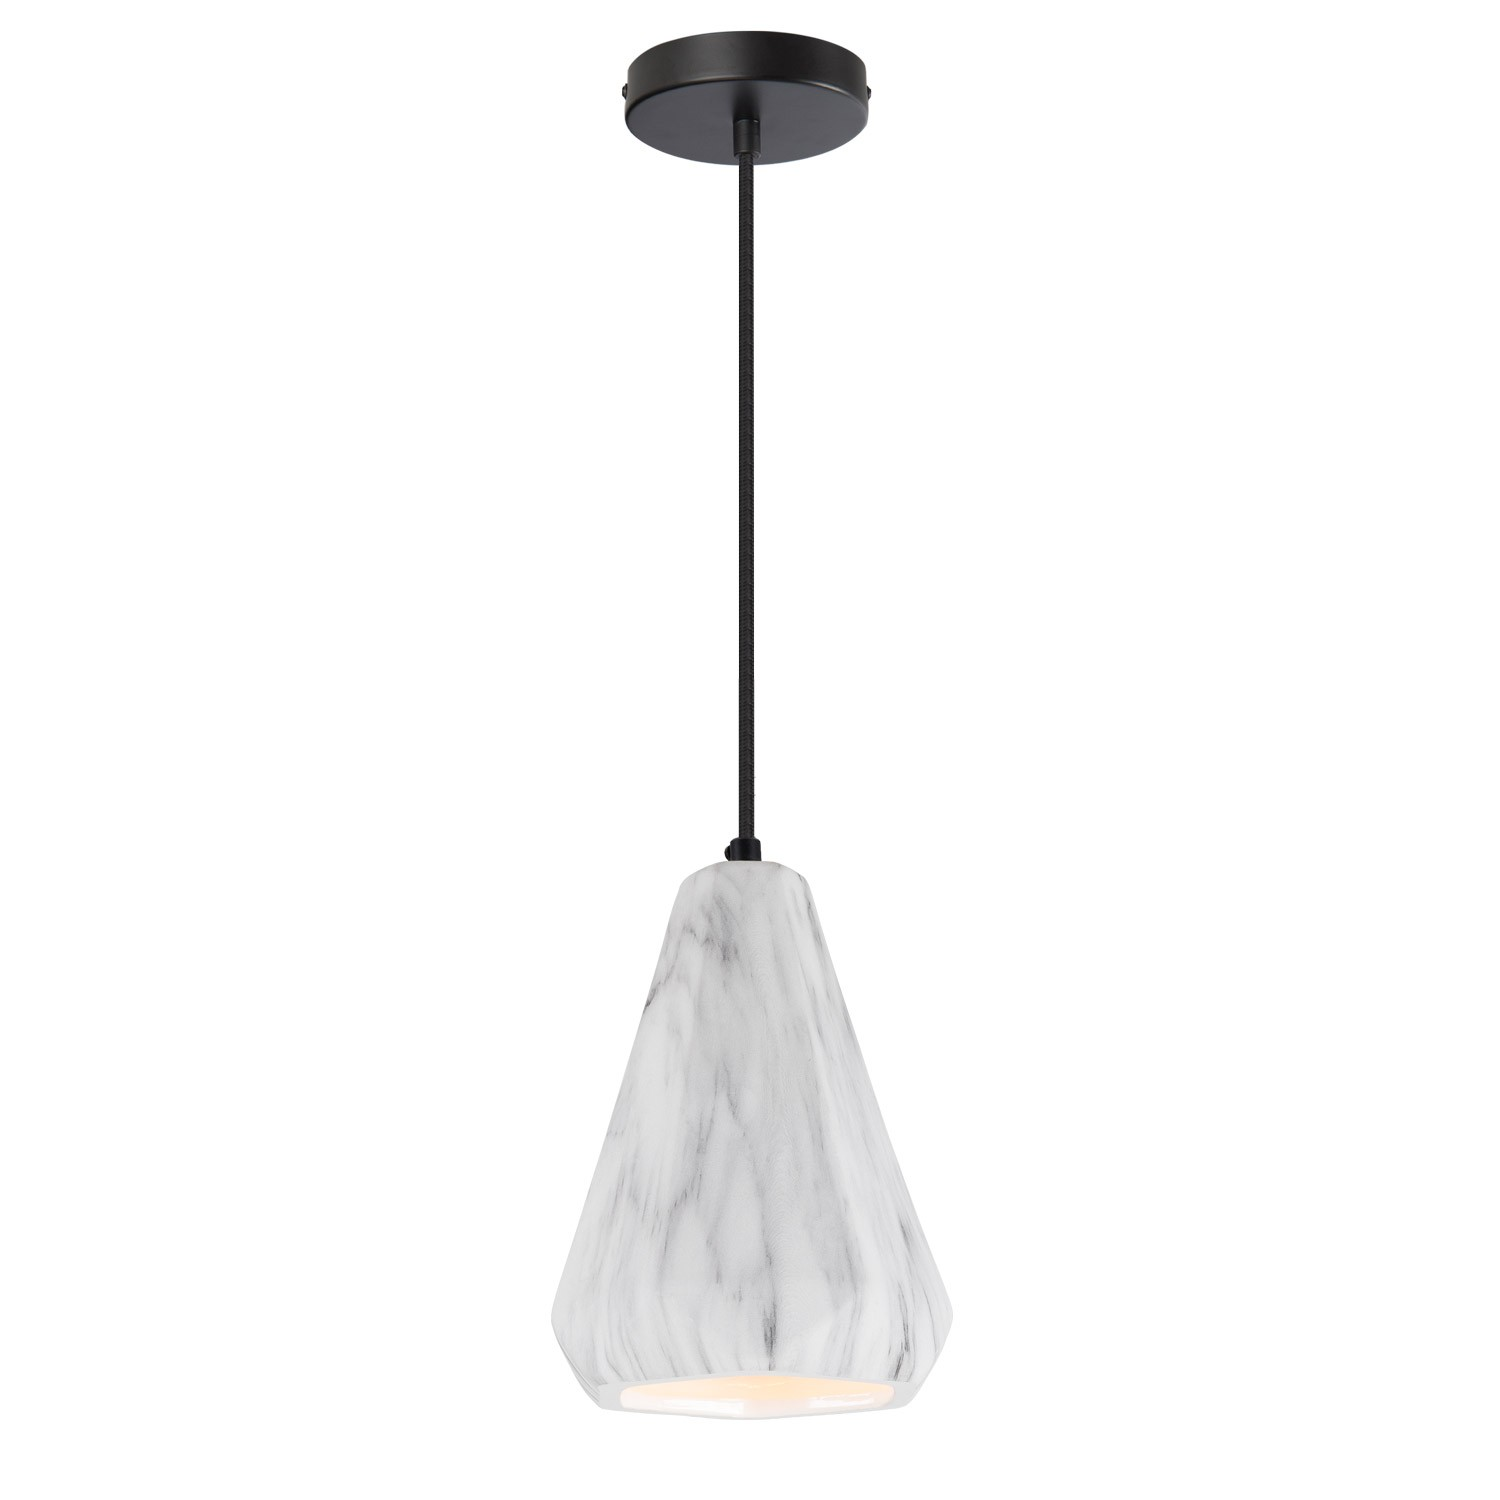 Mika Lamp, gallery image 1